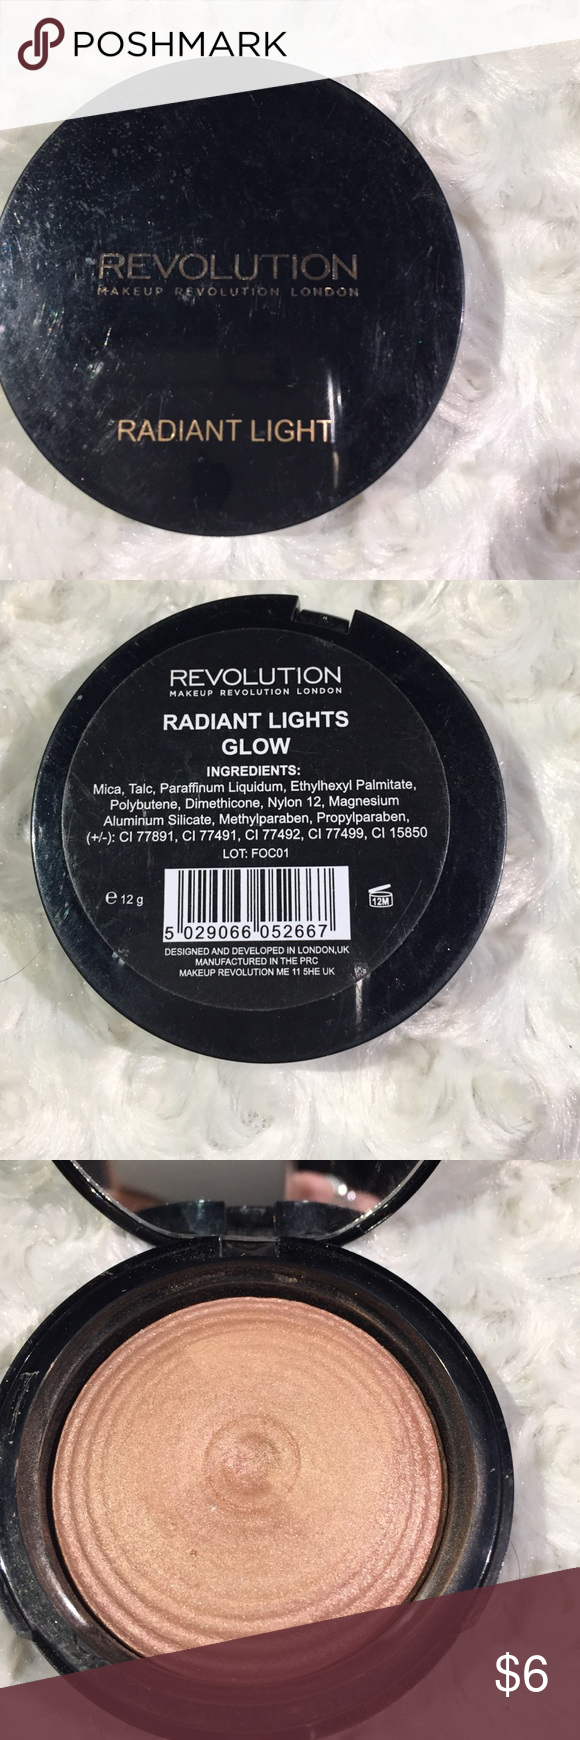 Makeup Revolution Radiant Lights in Glow I ordered this